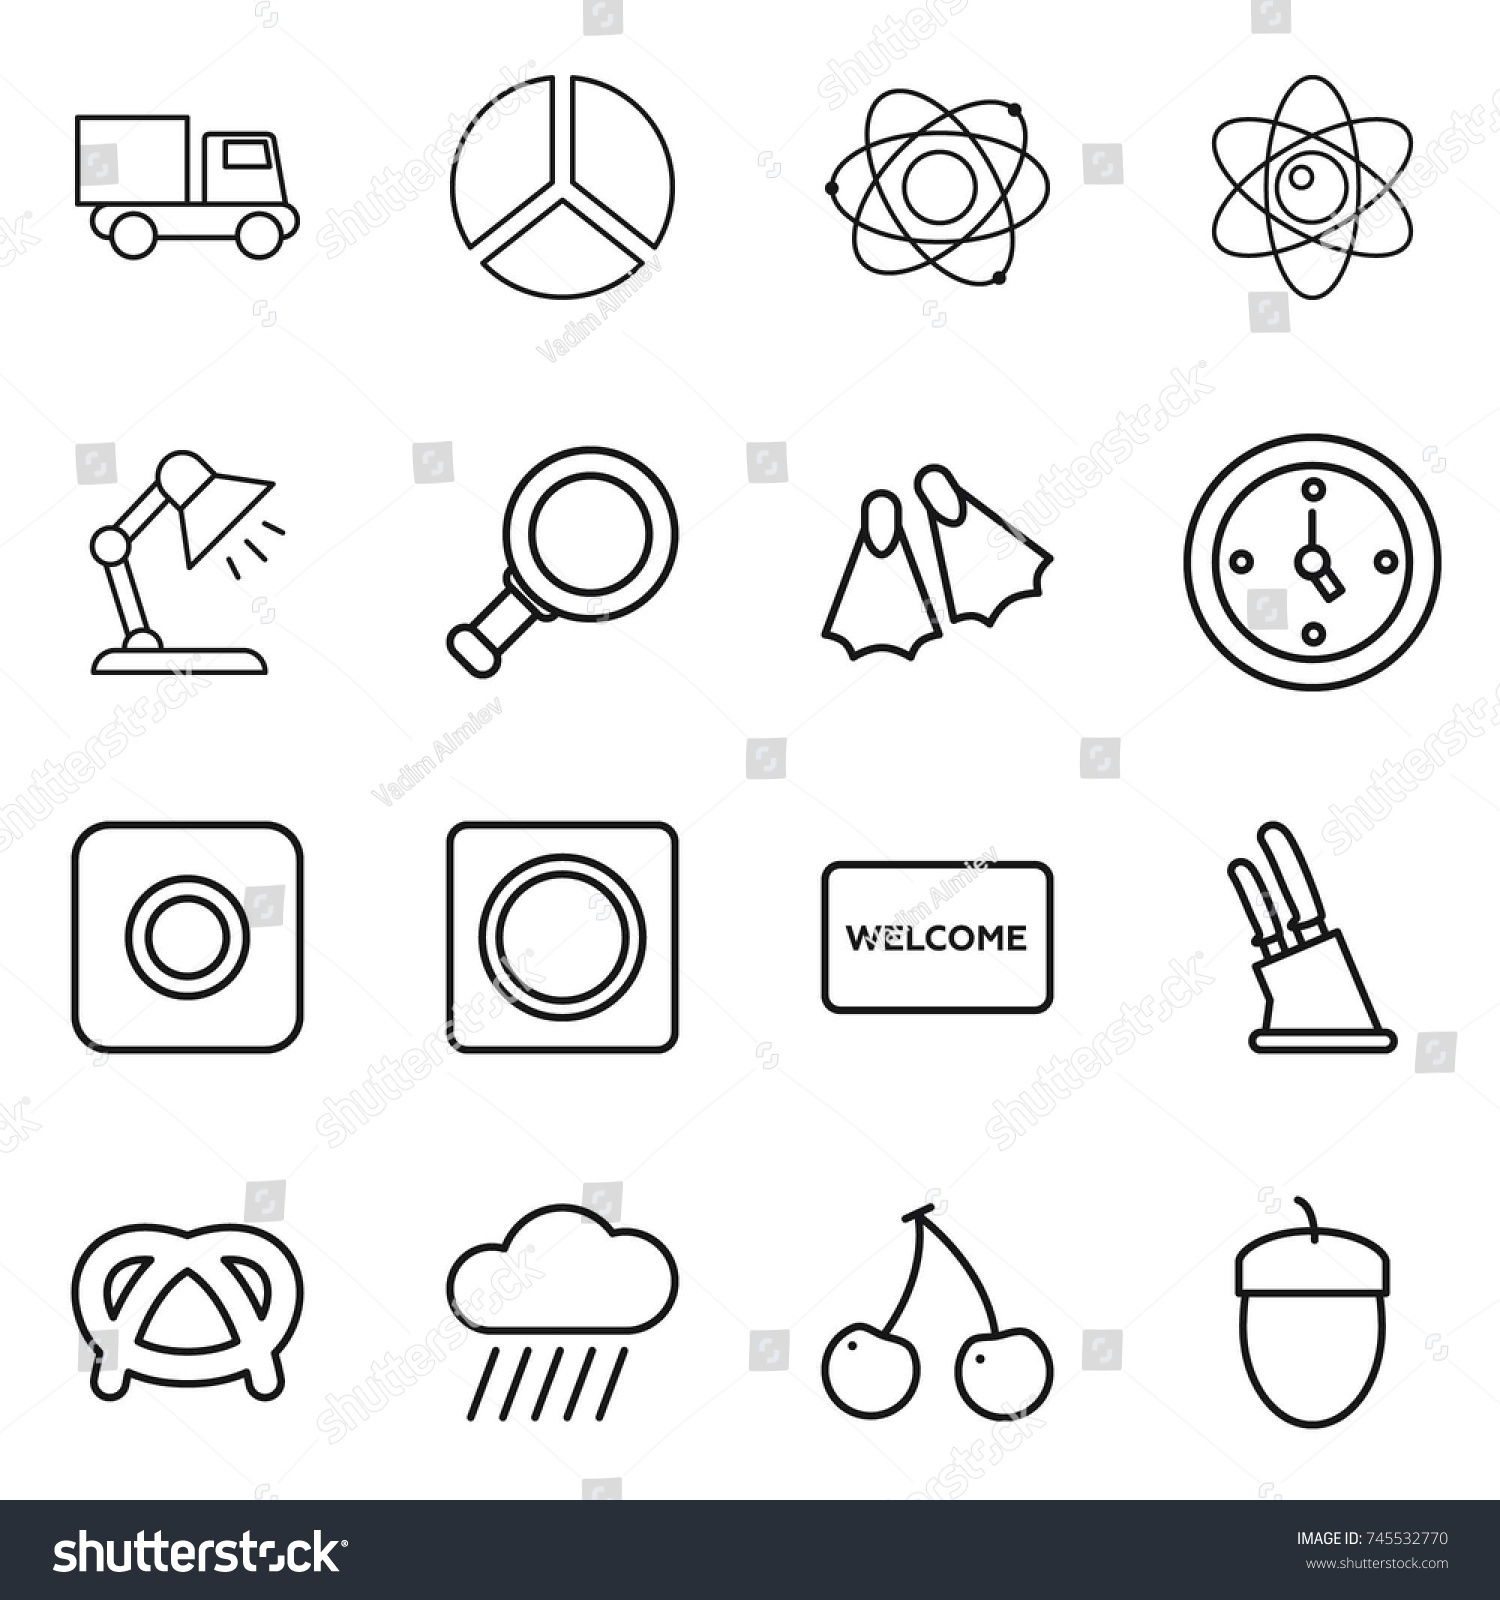 Thin line icon set truck diagram stock vector 745532770 shutterstock thin line icon set truck diagram atom table lamp magnifier ccuart Choice Image